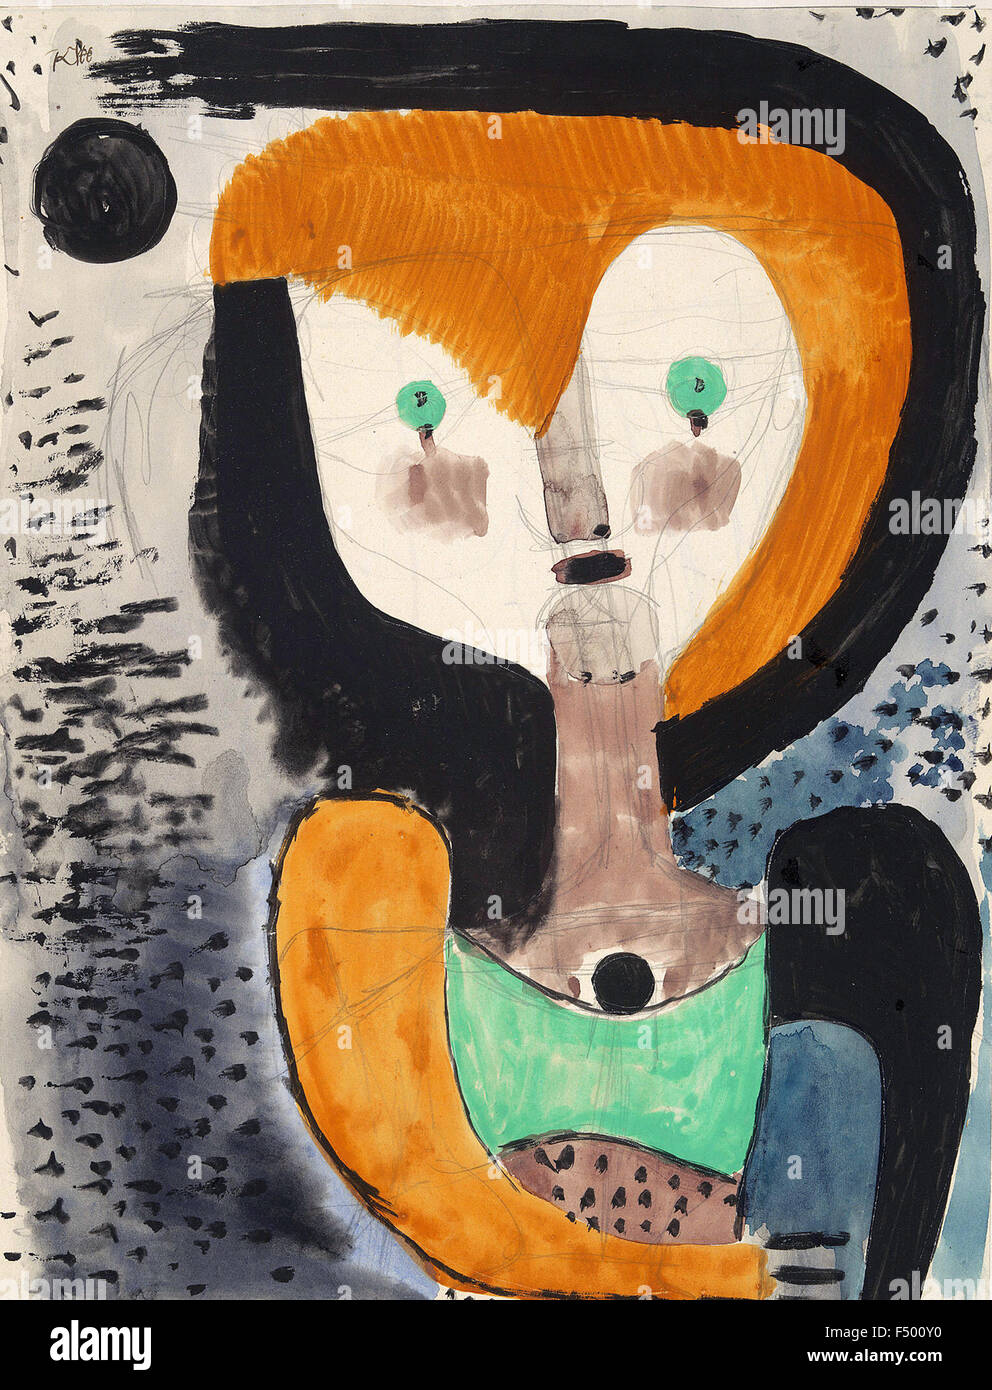 Paul Klee - Aquarelleskizze zu 'MA' (Aquarelle de 'M. A.') Photo Stock